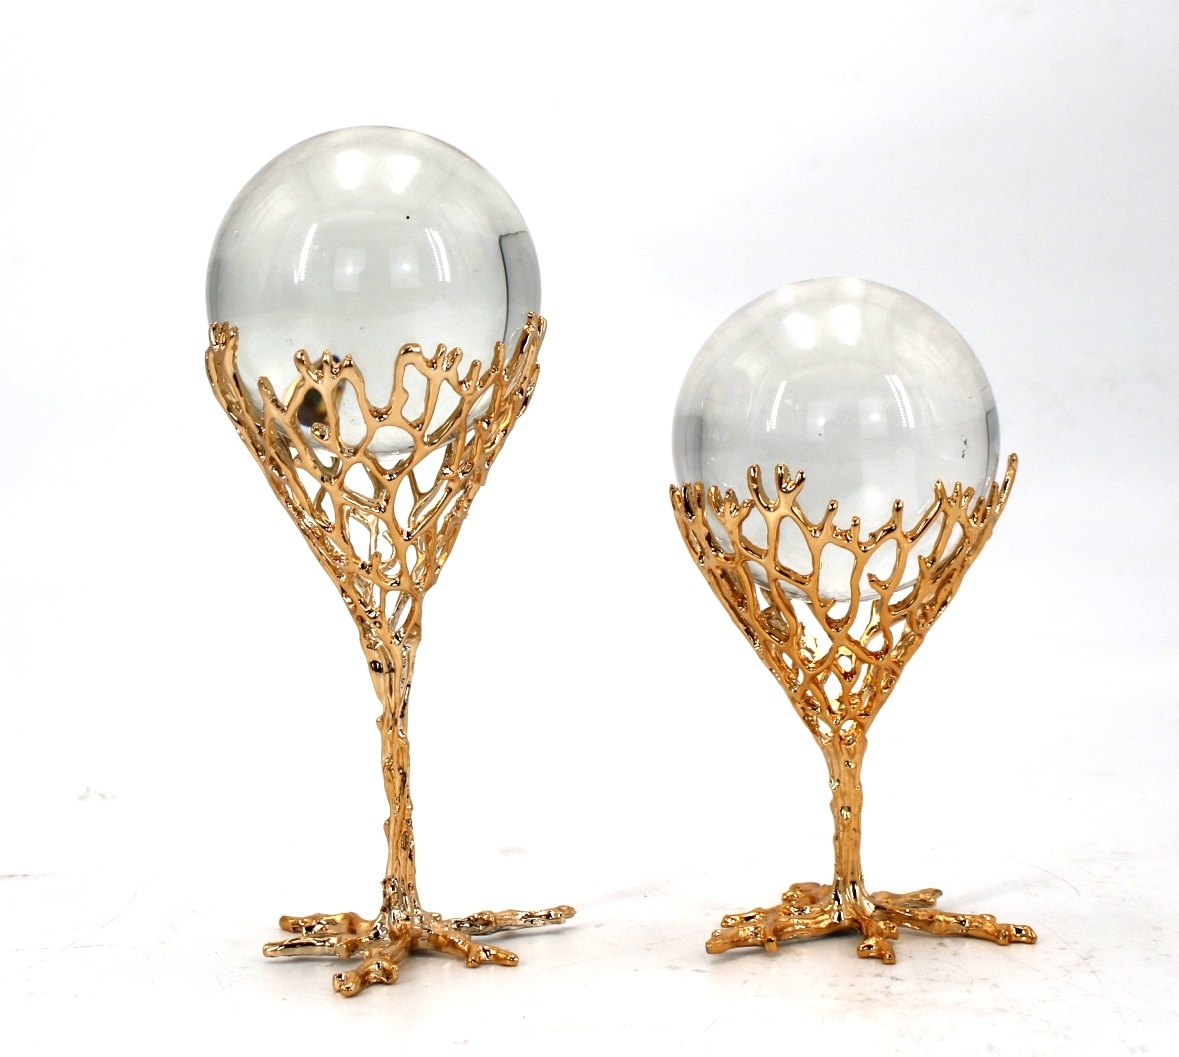 China Unique Wholesale Home Decor Crystal Ball Desktop Decor Luxury Home Decor Home Table Decoration China Candle Holder And Home Decoration Price